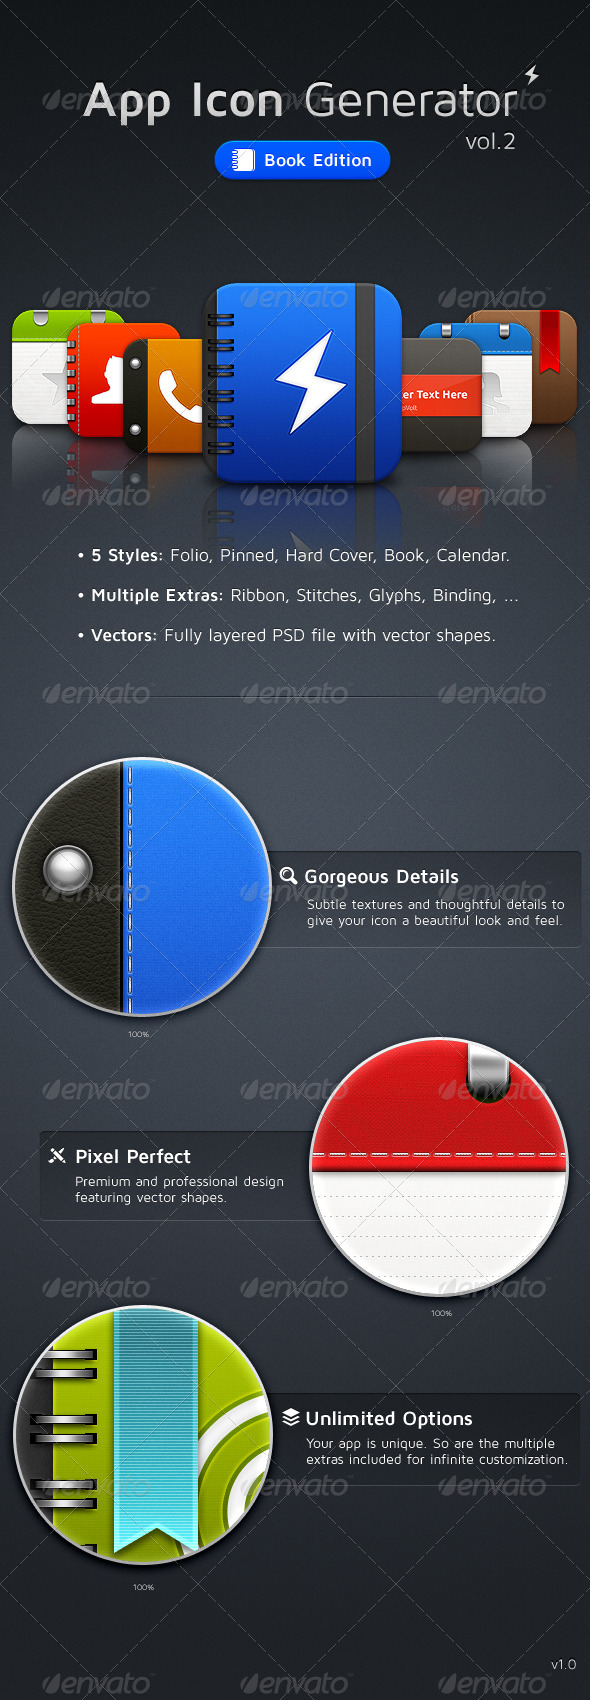 App clipart creator banner library download 17 Best ideas about App Icon Generator on Pinterest   App icon ... banner library download